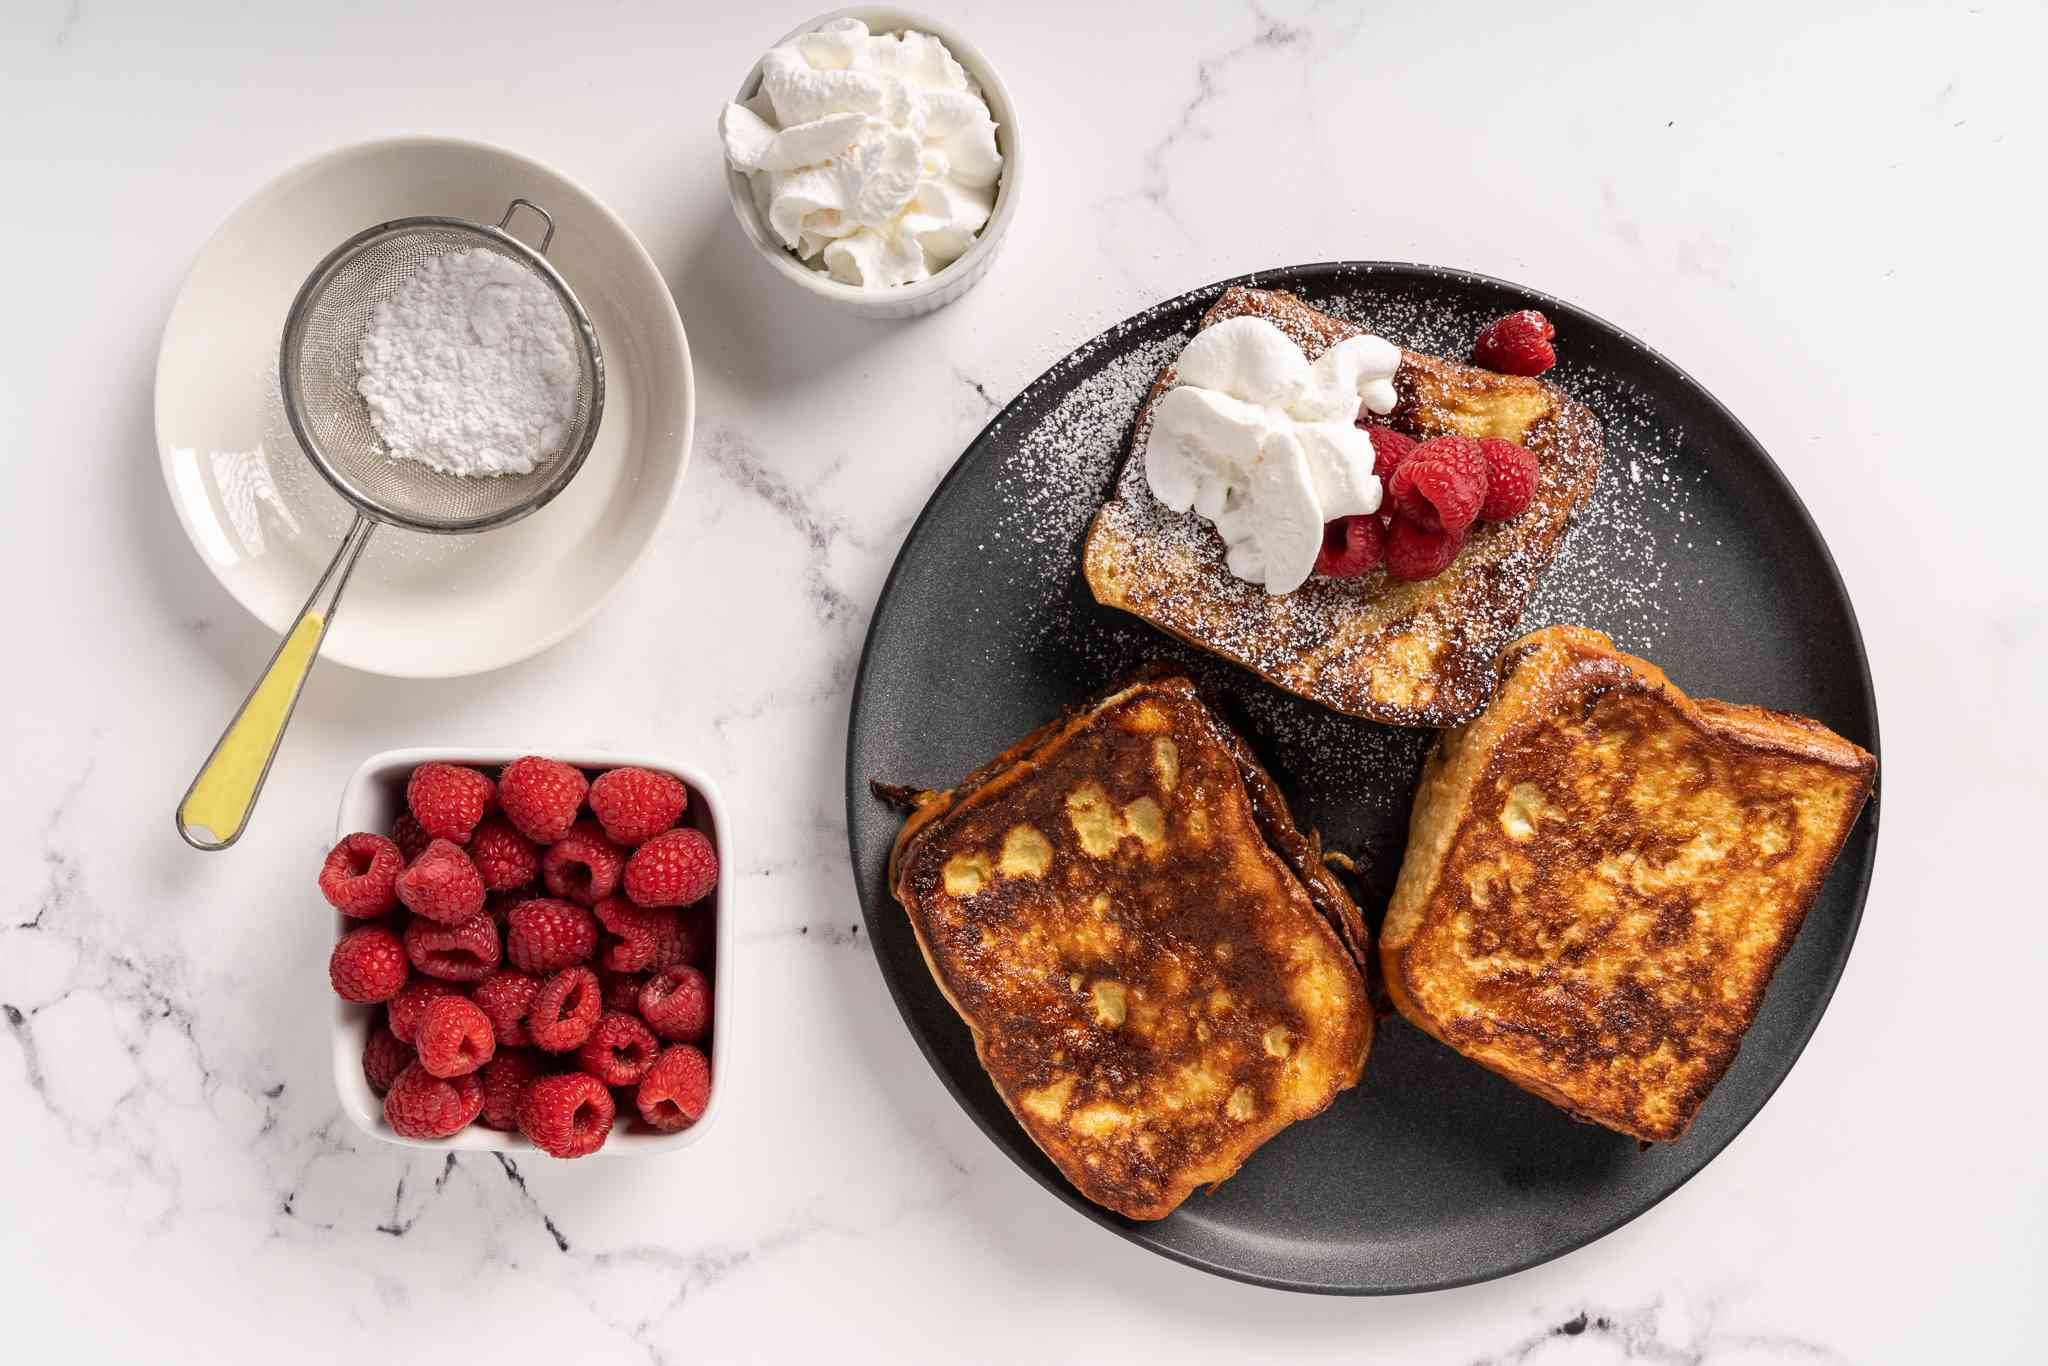 Nutella French Toast on a plate topped with raspberries, whipped cream and powdered sugar